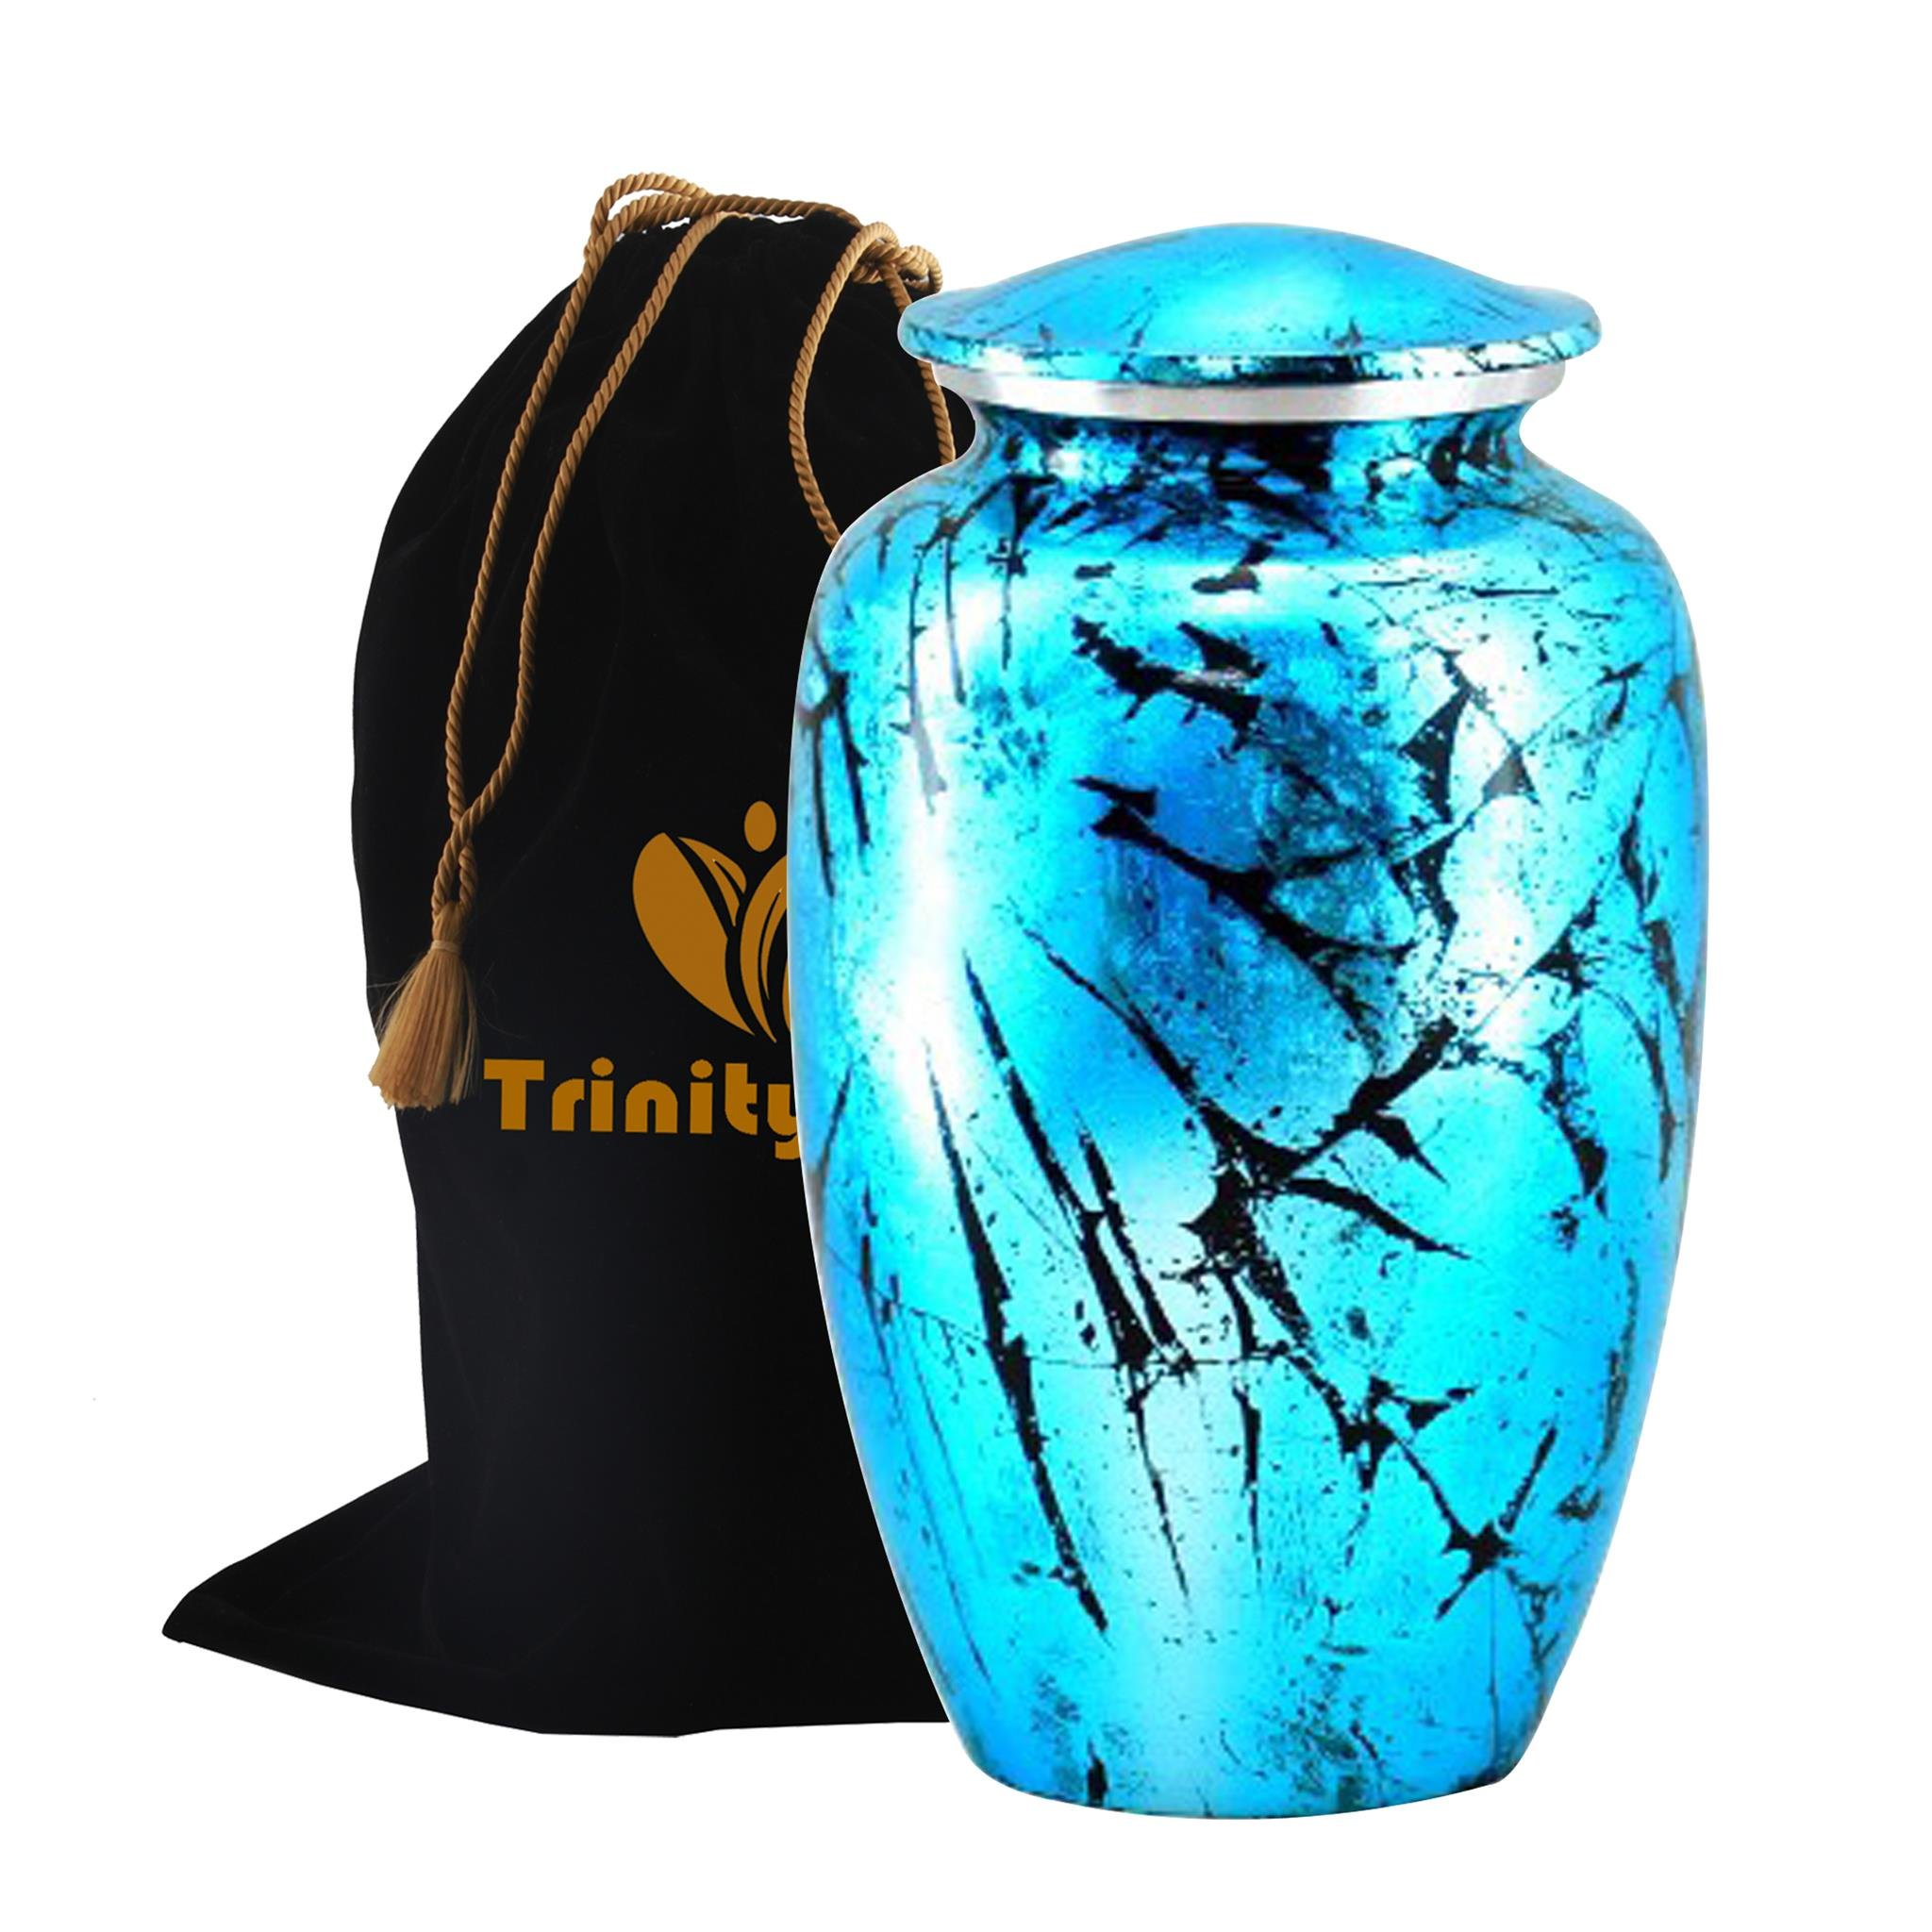 Shimmering Aqua Cremation Urn - Beautifully Handcrafted Adult Funeral Urn - Solid Metal Funeral Urn - Affordable Urn for Human Ashes with Free Velvet Bag